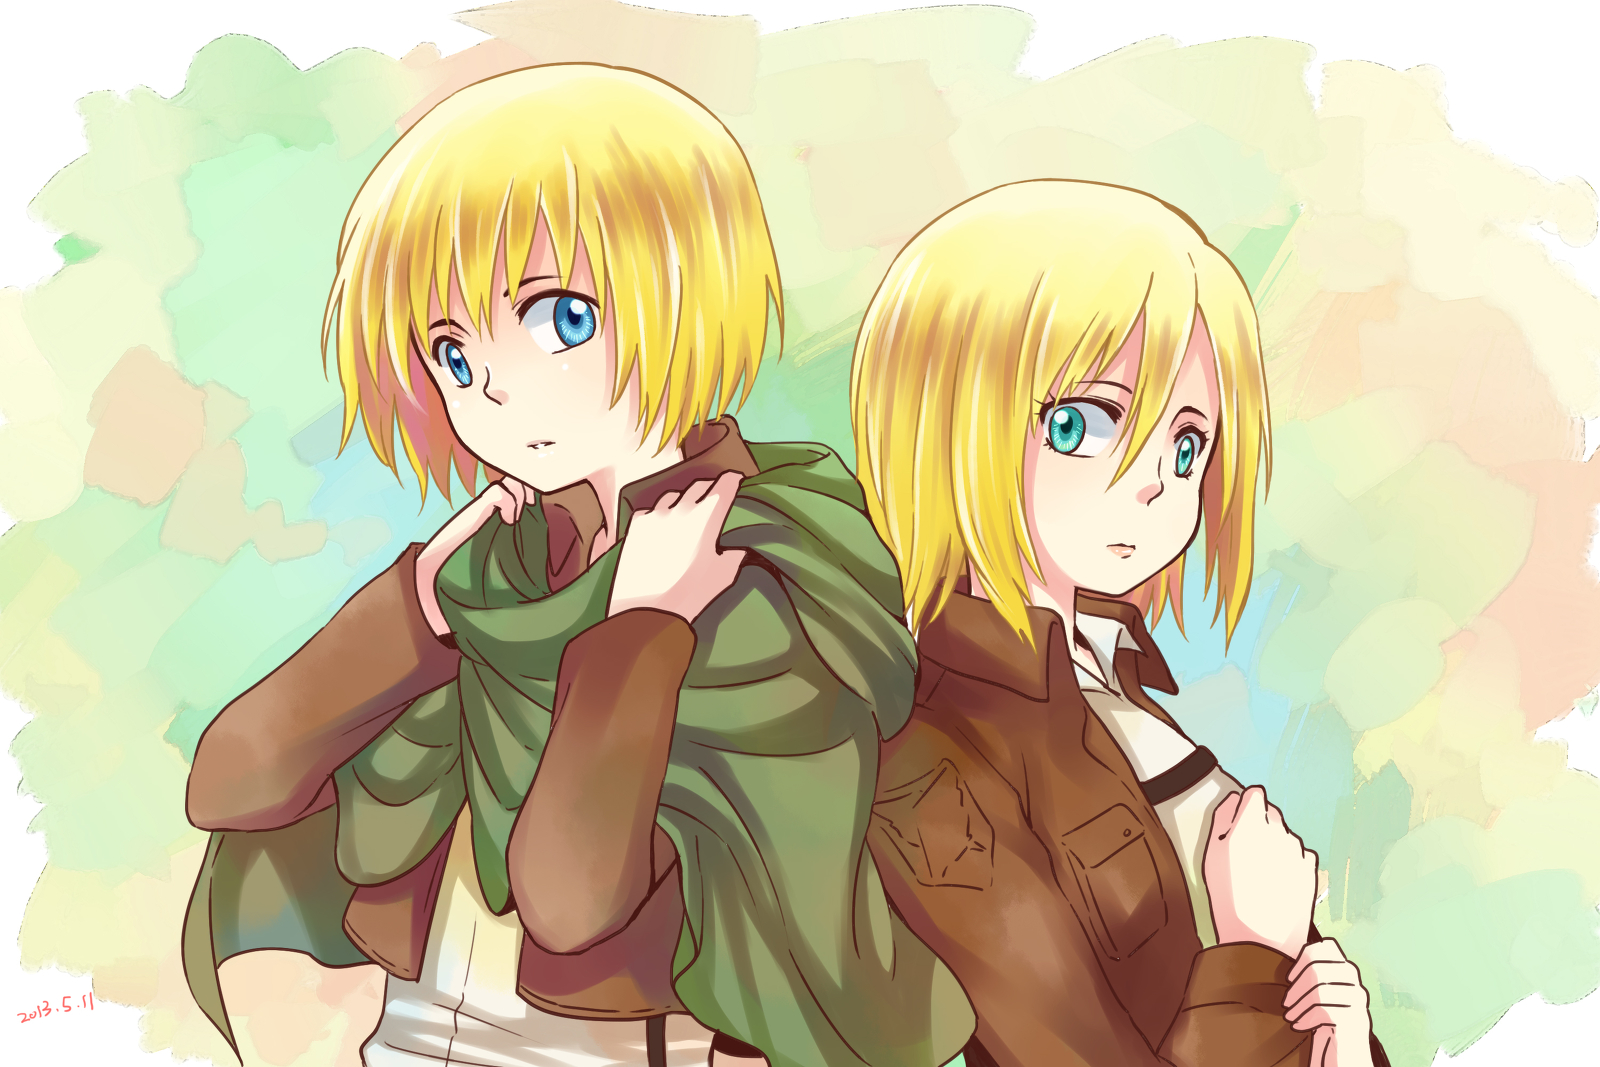 christa armin annie - photo #22